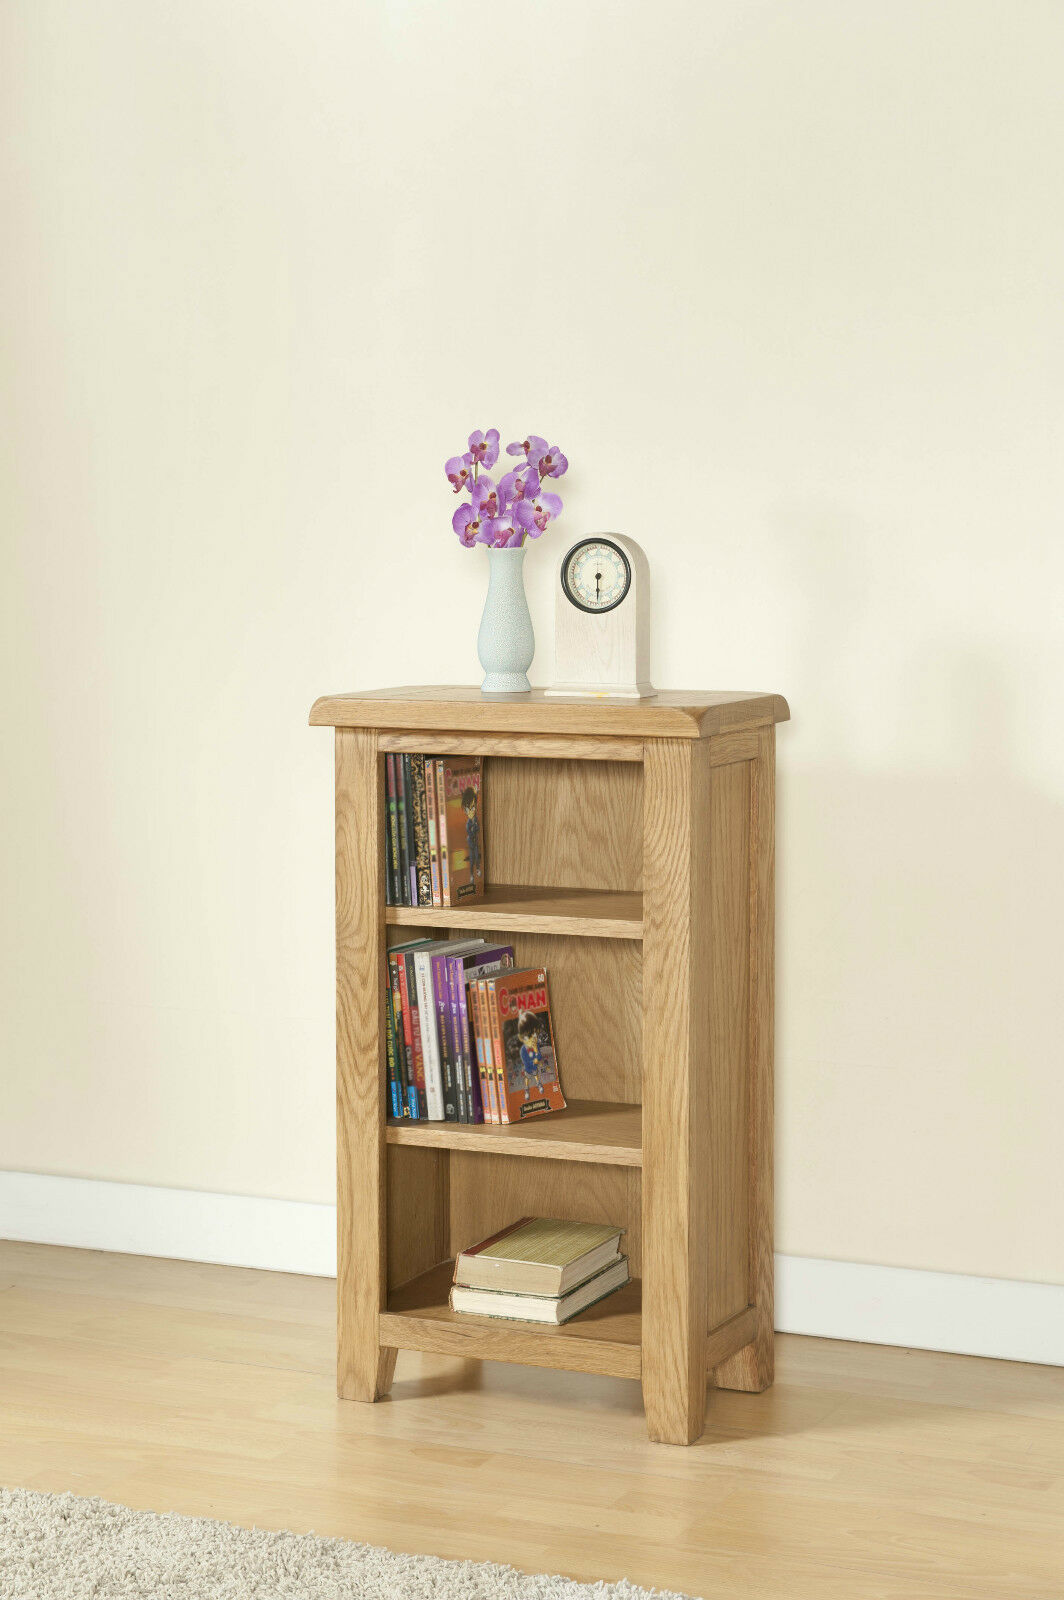 SOLID CHUNKY WOOD RUSTIC OAK SMALL NARROW BOOKCASE DISPLAY ...